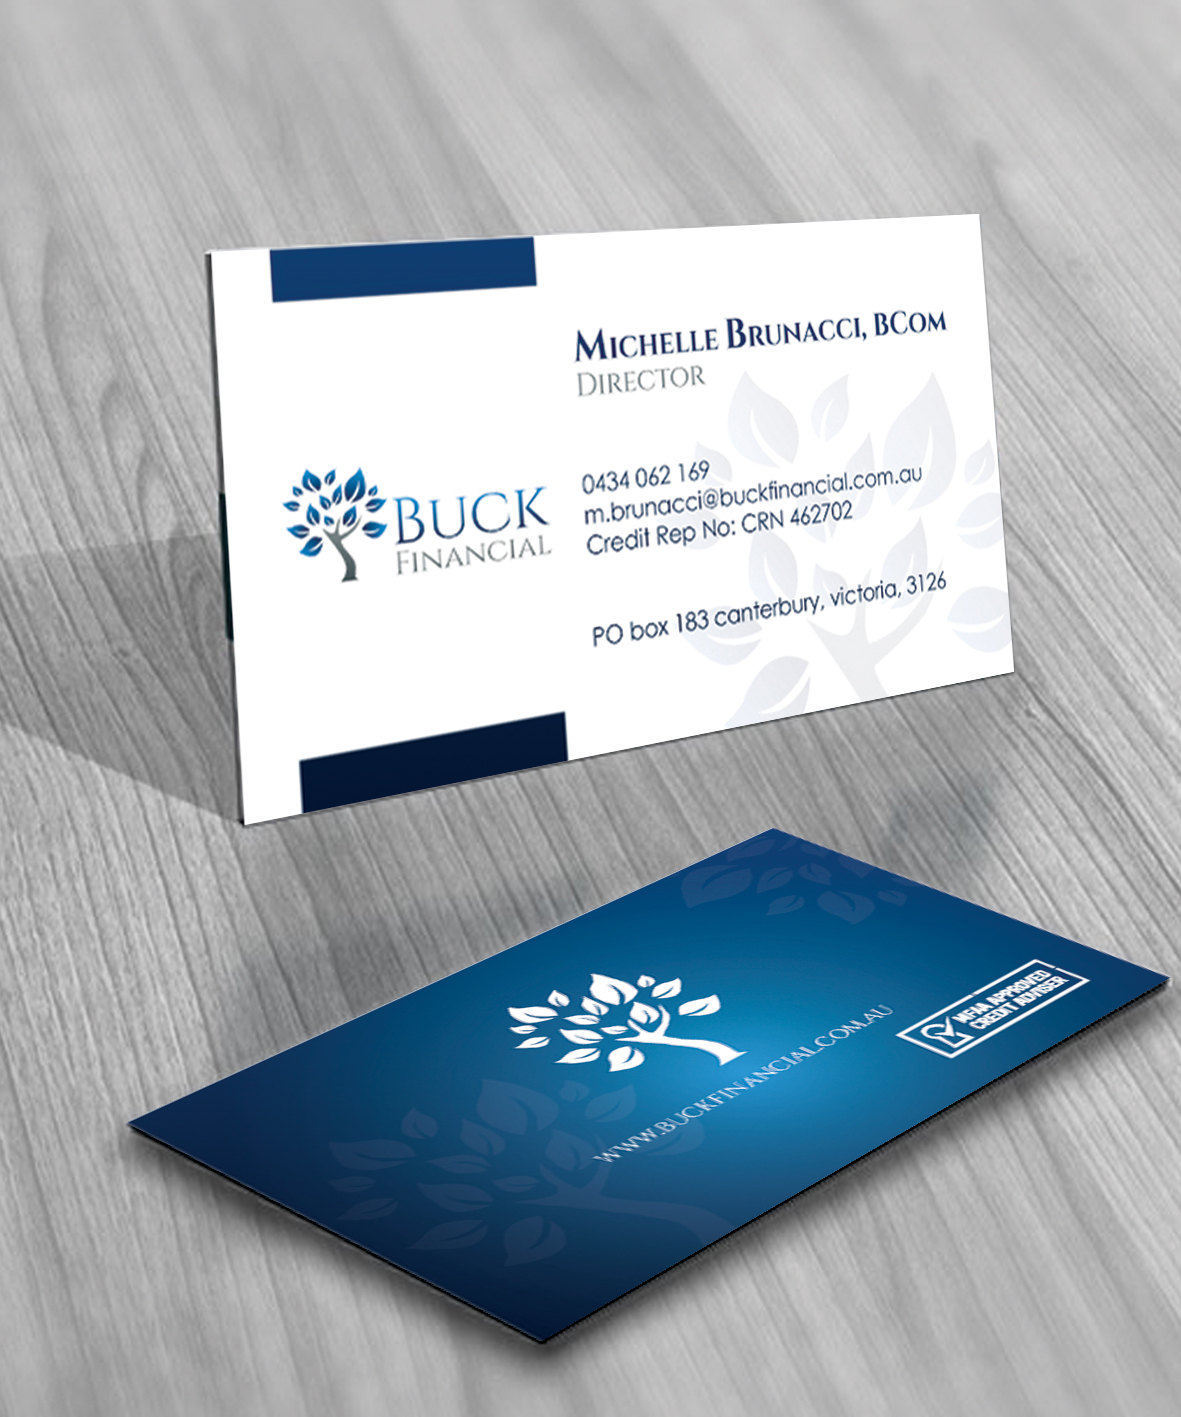 Professional upmarket finance business card design for buck business card design by sing wei for buck financial group design 4287649 colourmoves